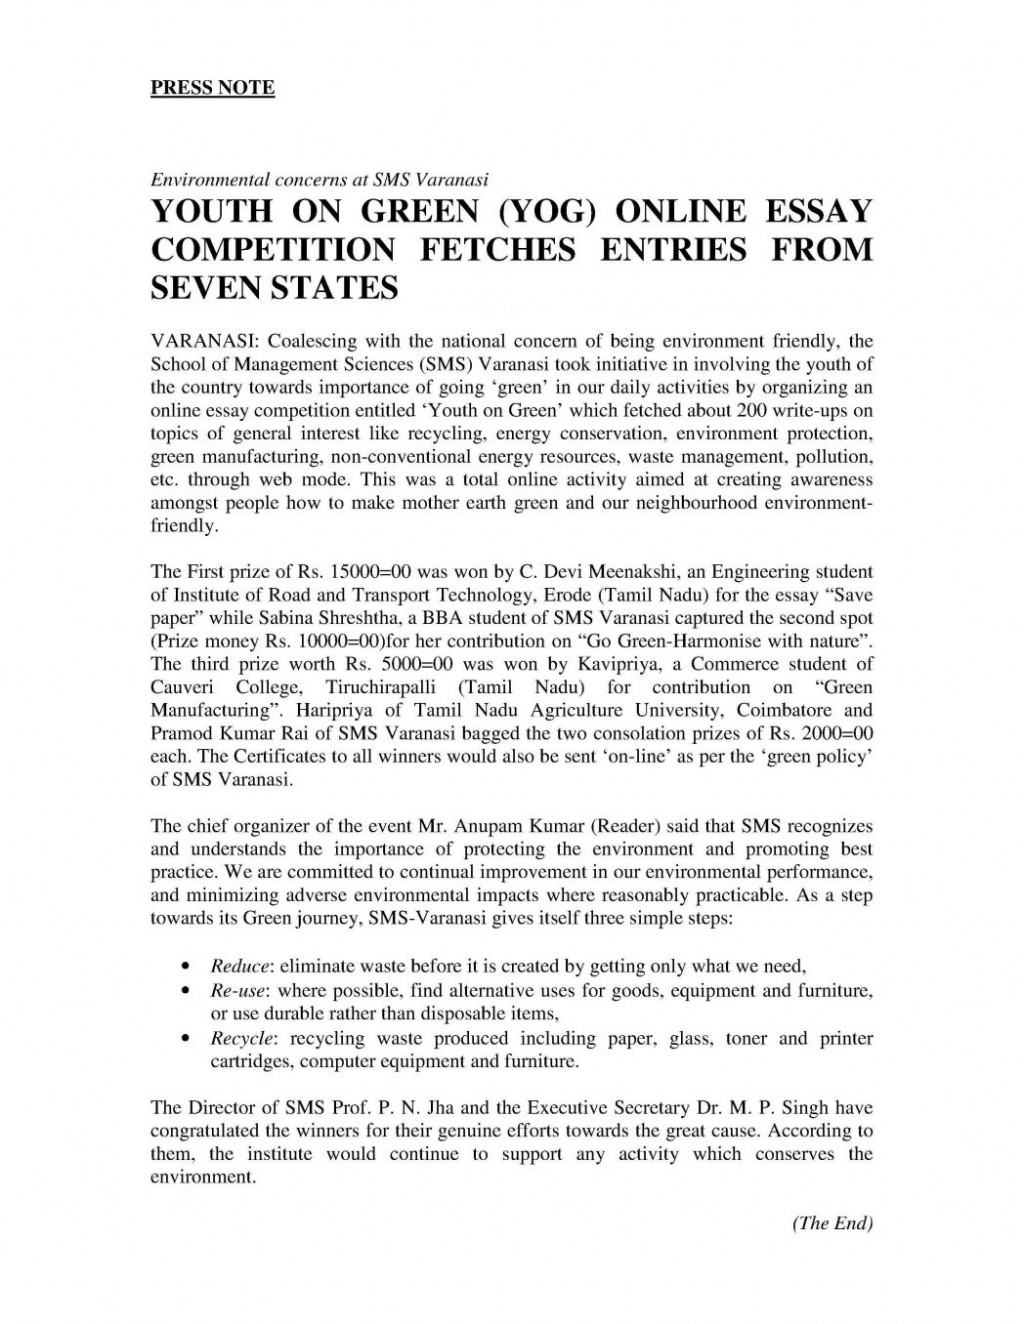 020 Best Essays For College Essay On Good Habits How Tot Application Online Yog Press Re About Yourself Examples Your Background Failure Prompt Off Hook 1048x1356 Example Amazing To Start An With A Do U Book Autobiography Large